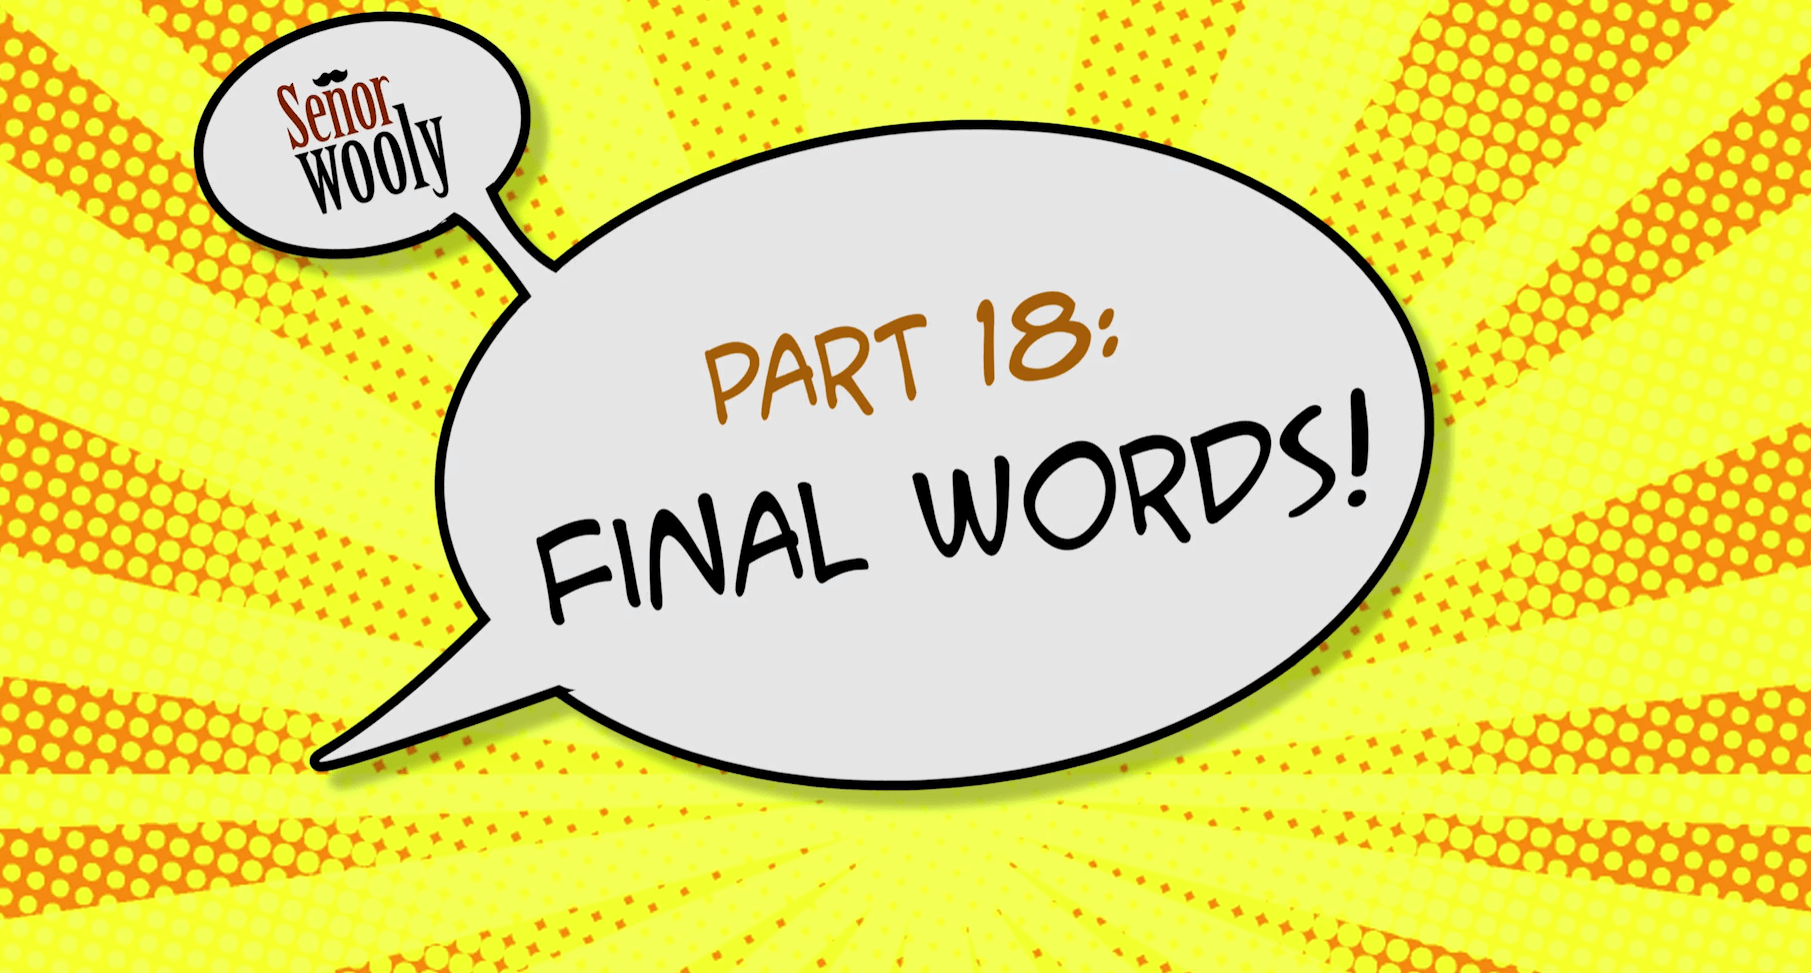 Part 18 - Final Words!